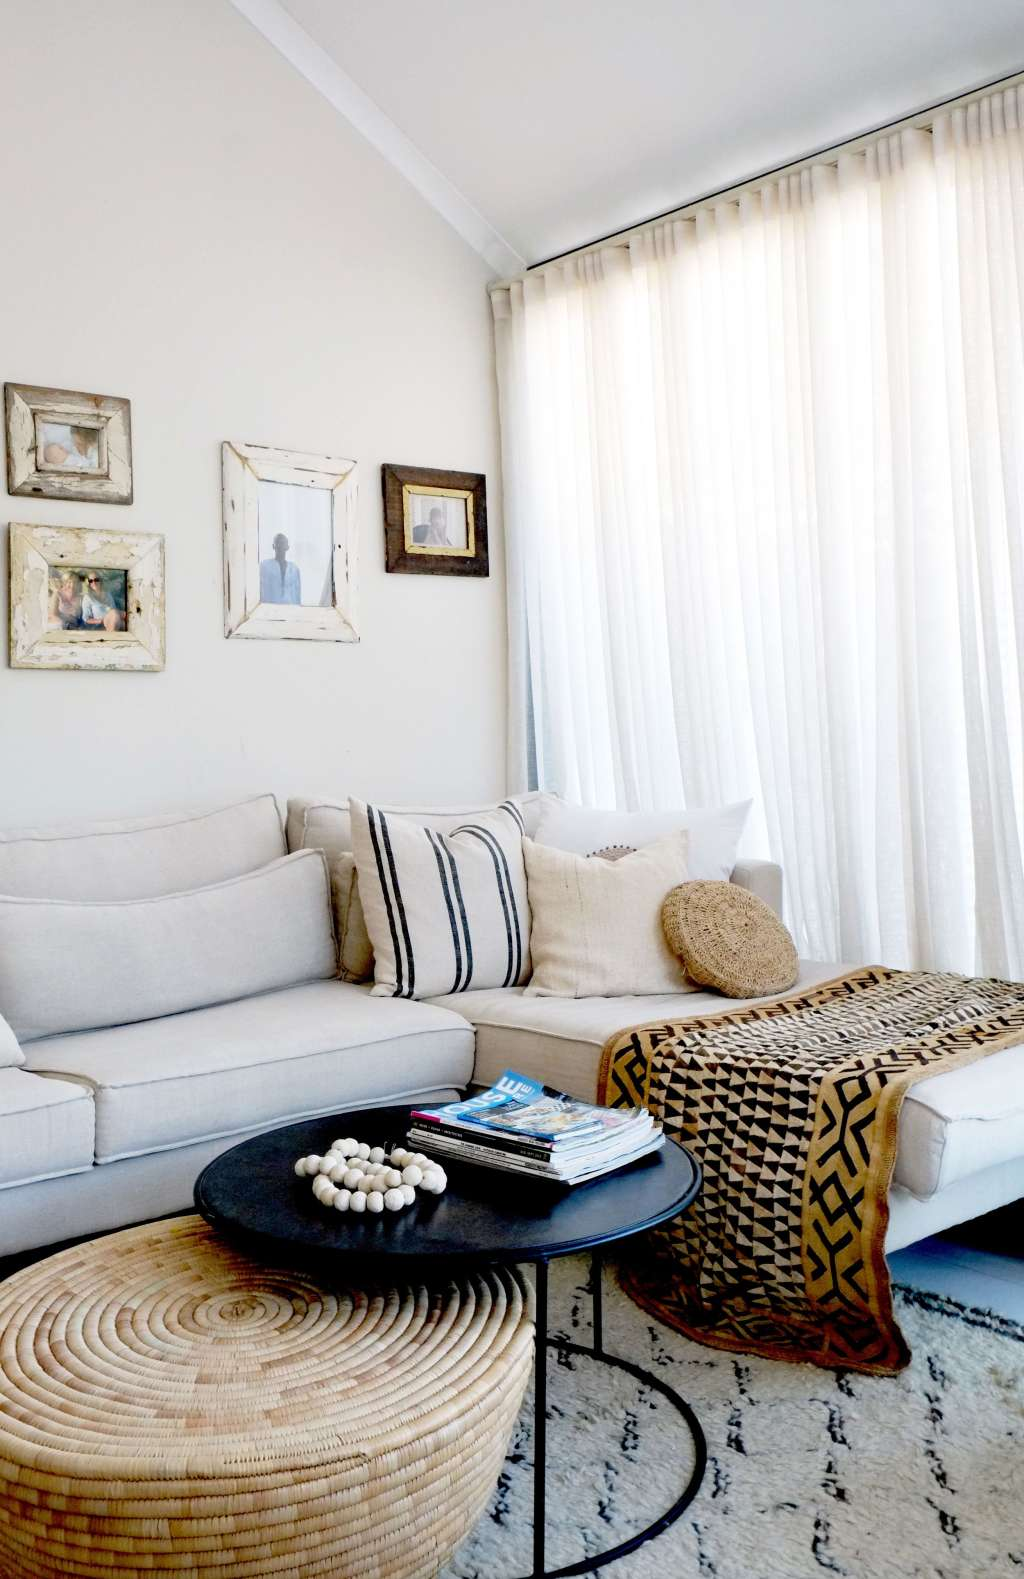 where to look for how to make cushions for cherifels